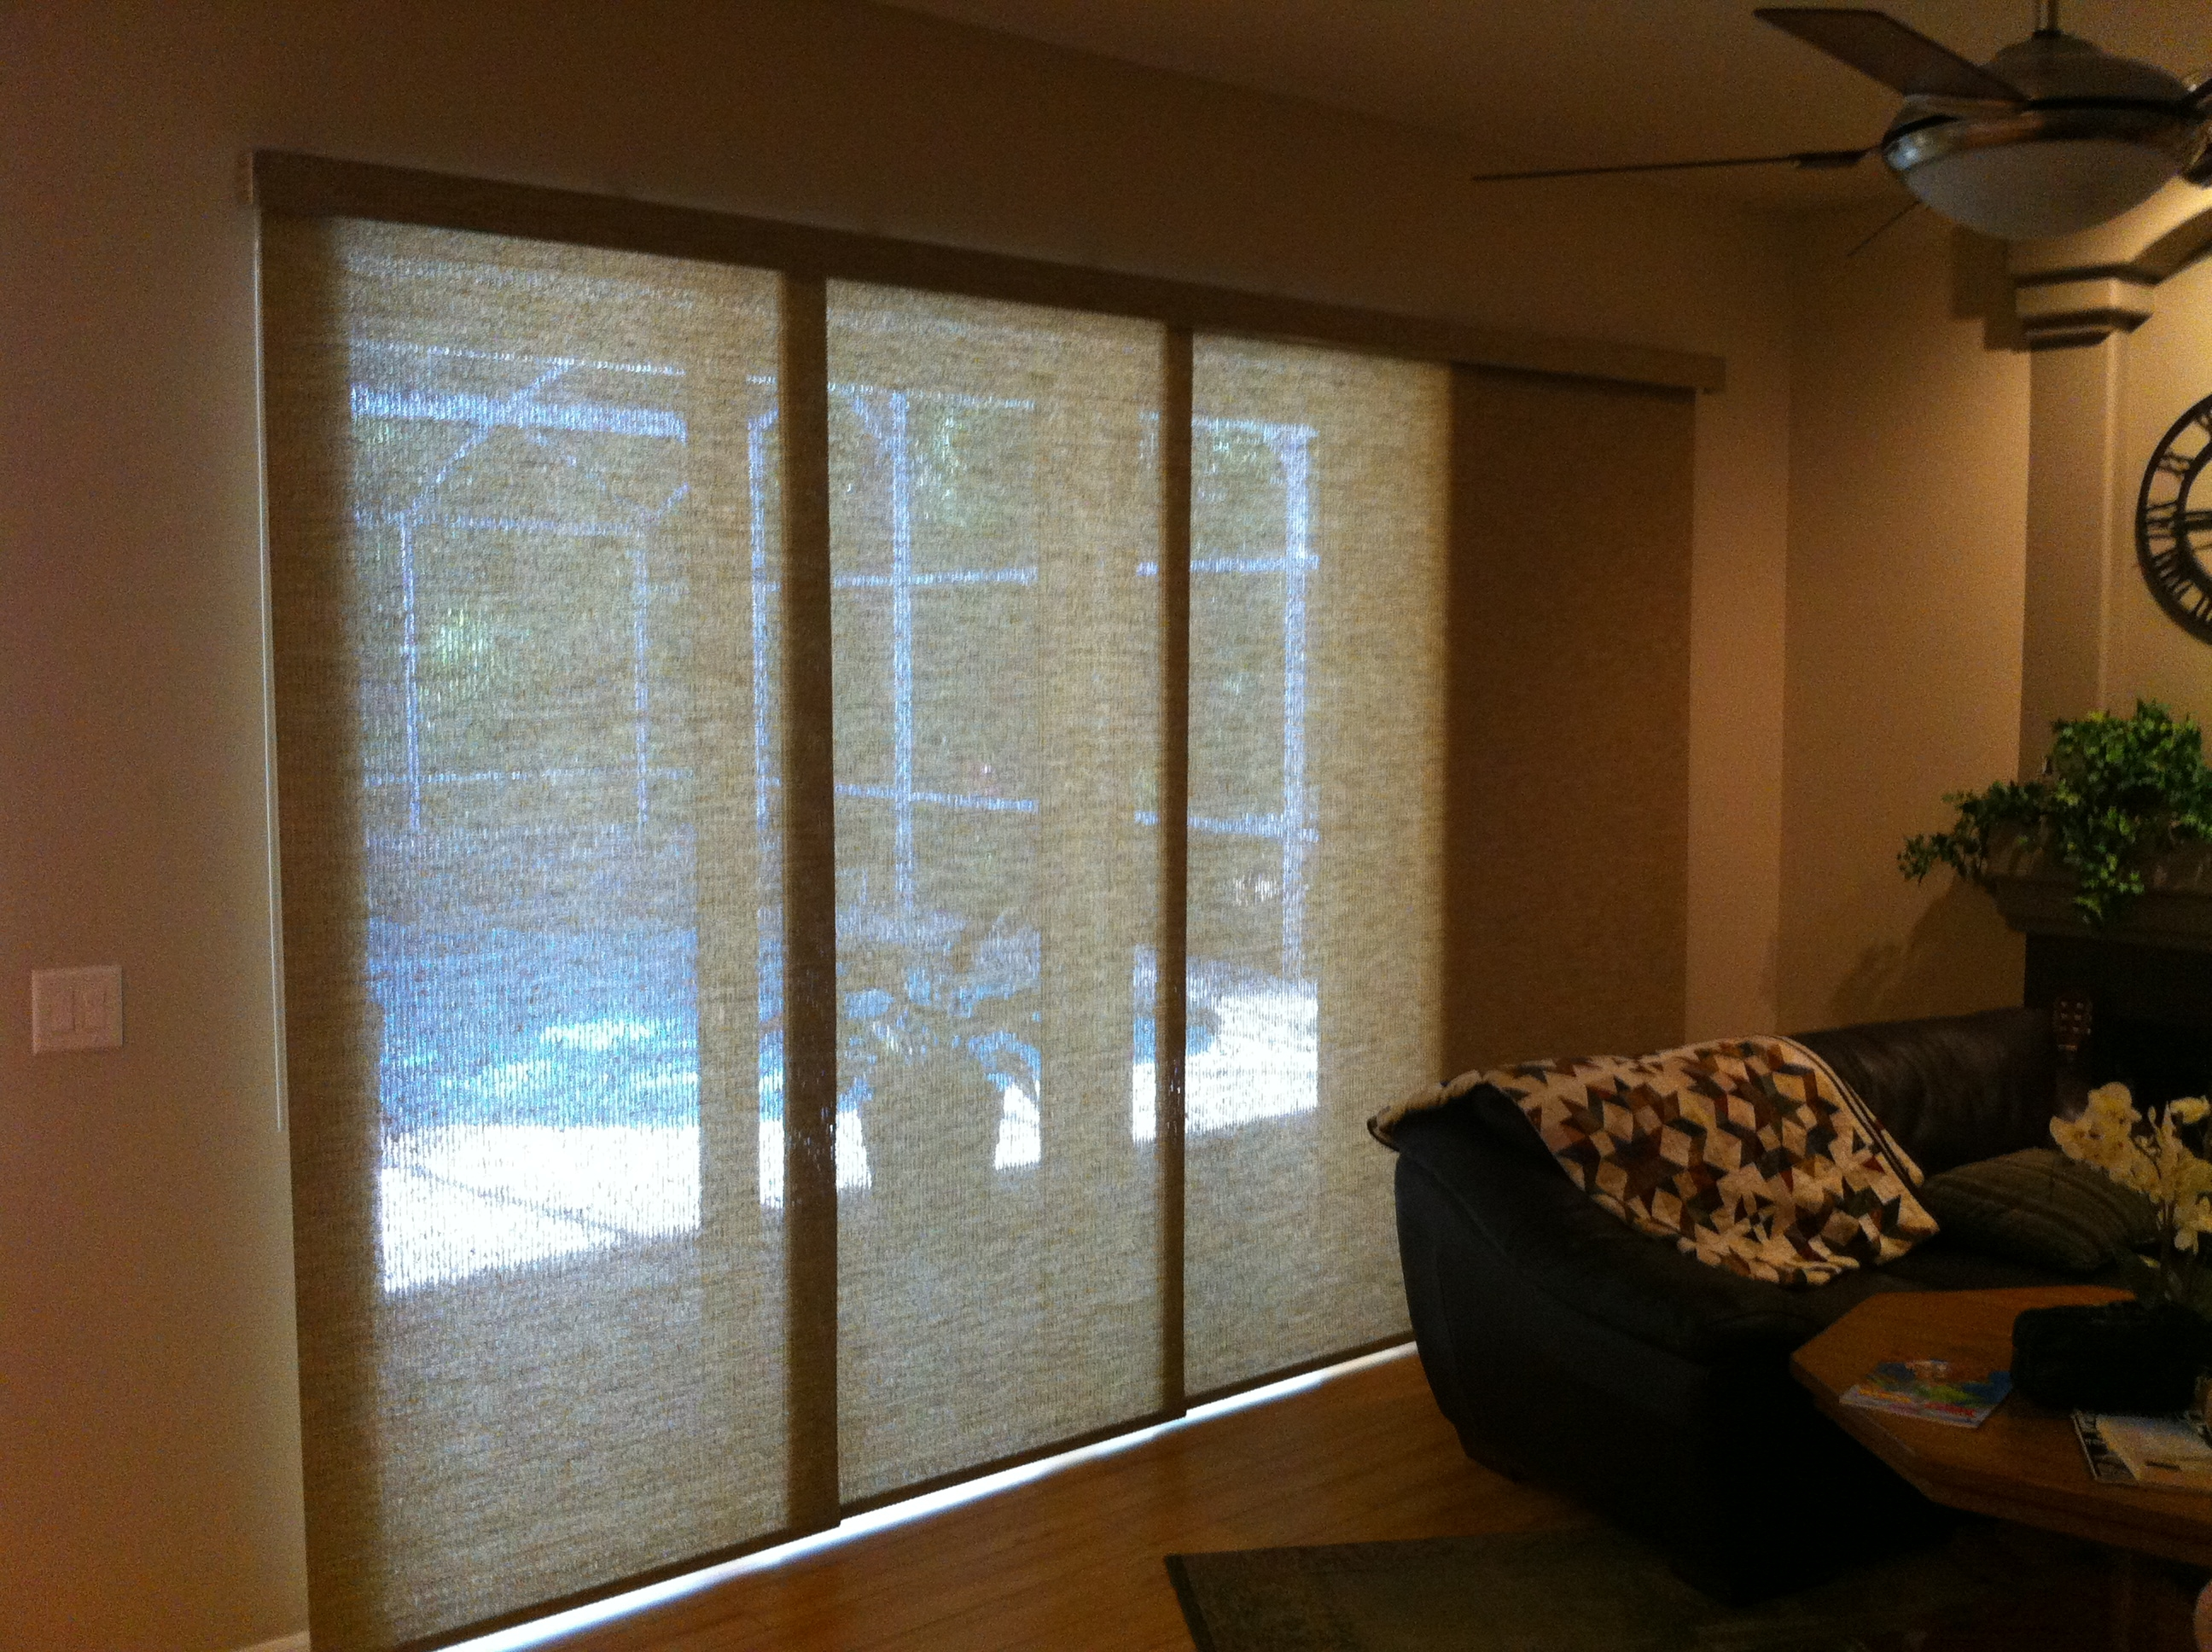 3 Panel Sliding Patio Door With Blinds2592 X 1936